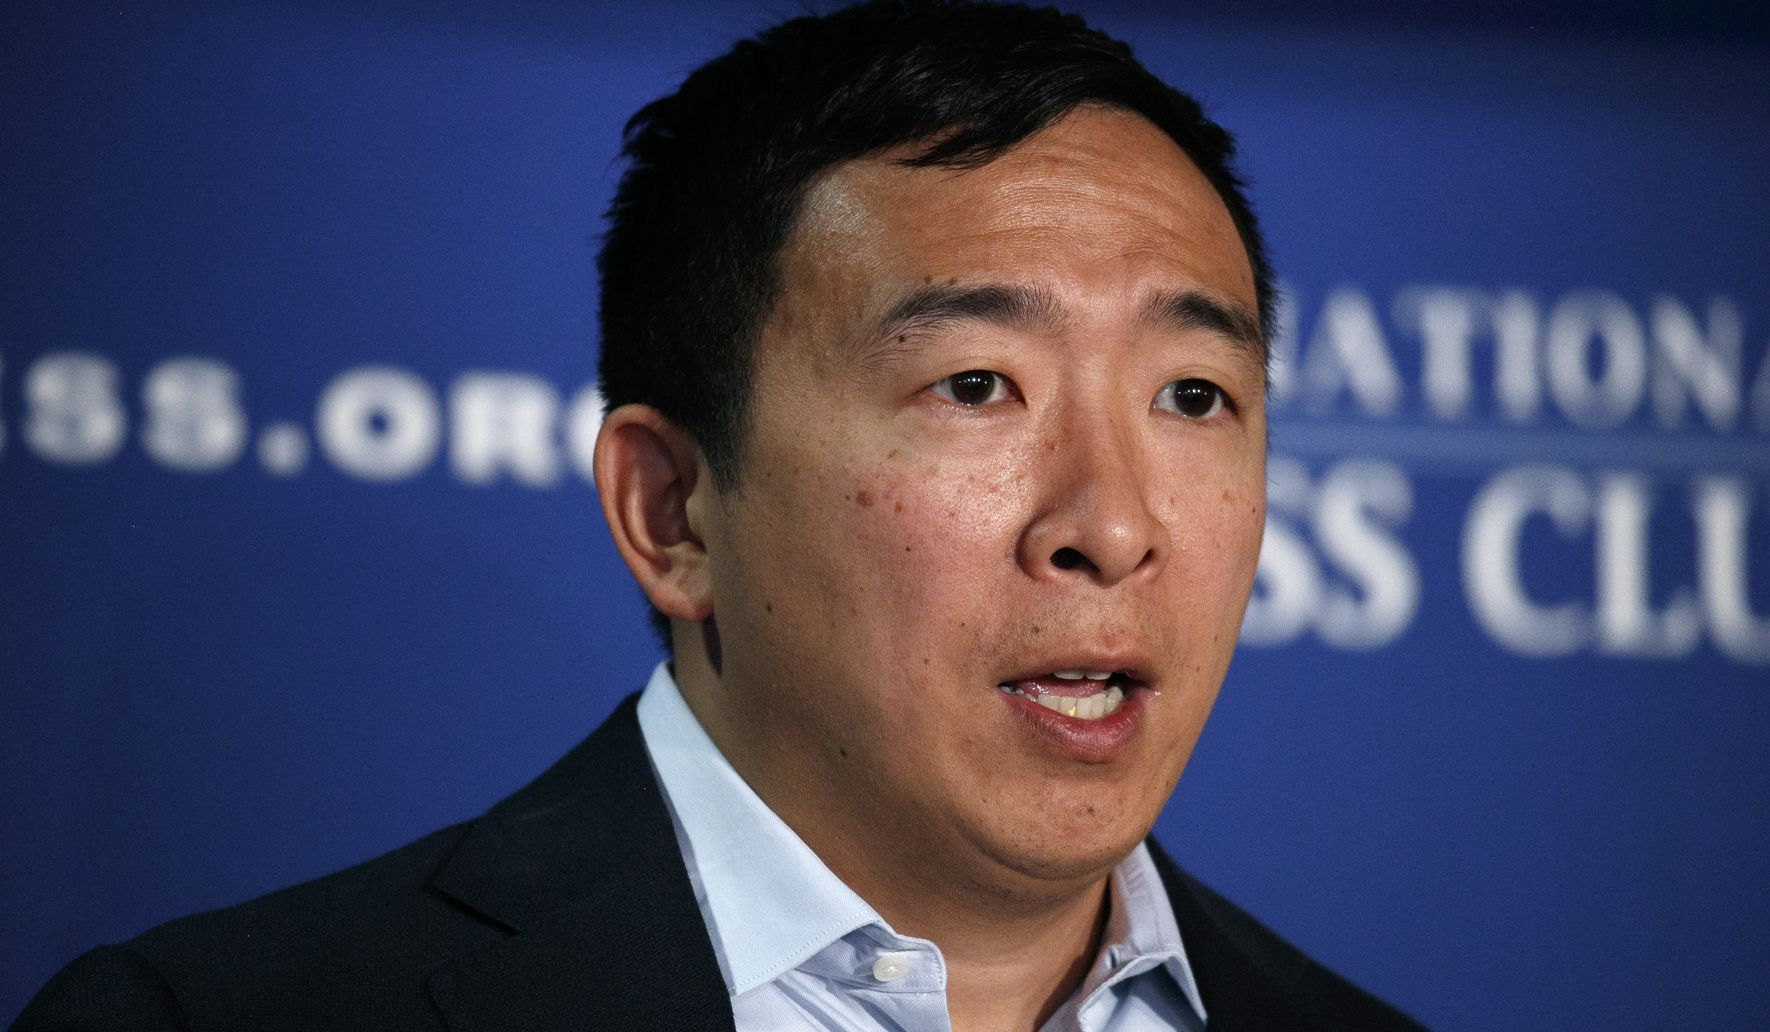 Andrew Yang teases running in 2020 with Joe Biden: 'We've actually talked about it'